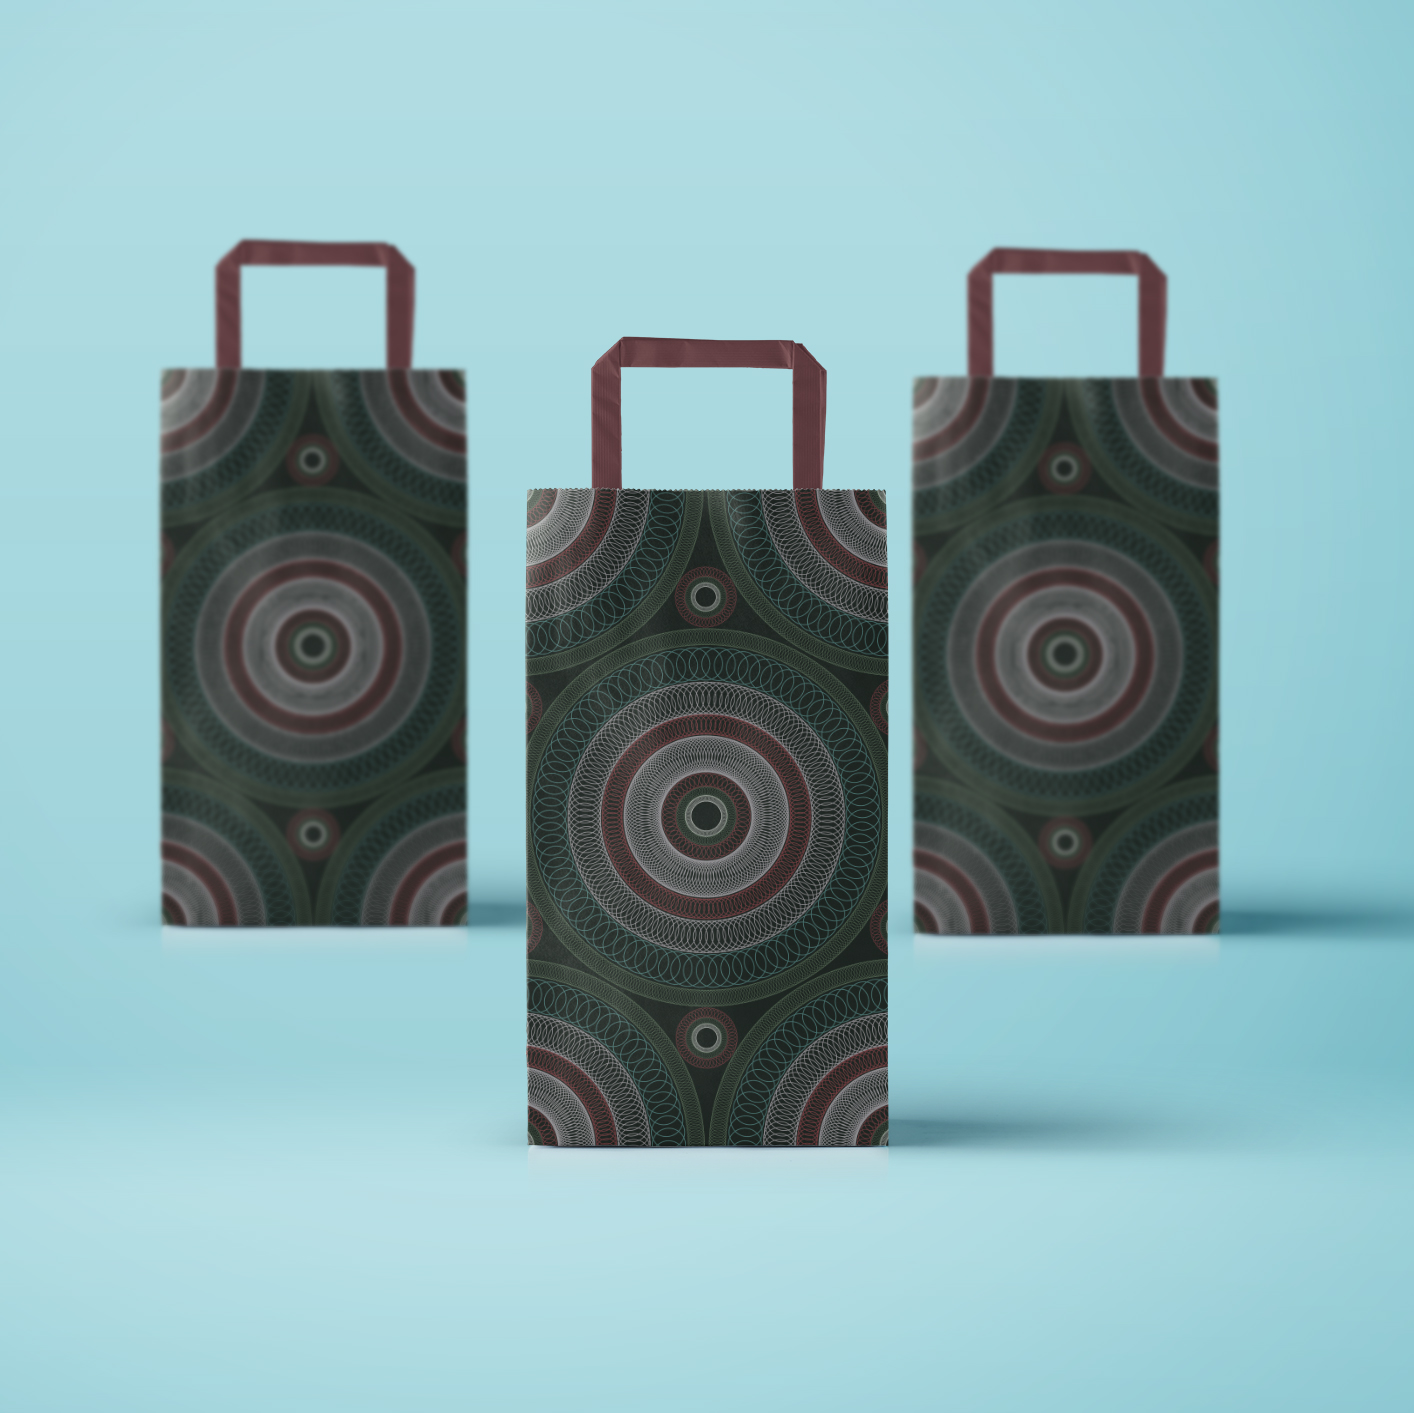 Paper bag design with impressive circular pattern